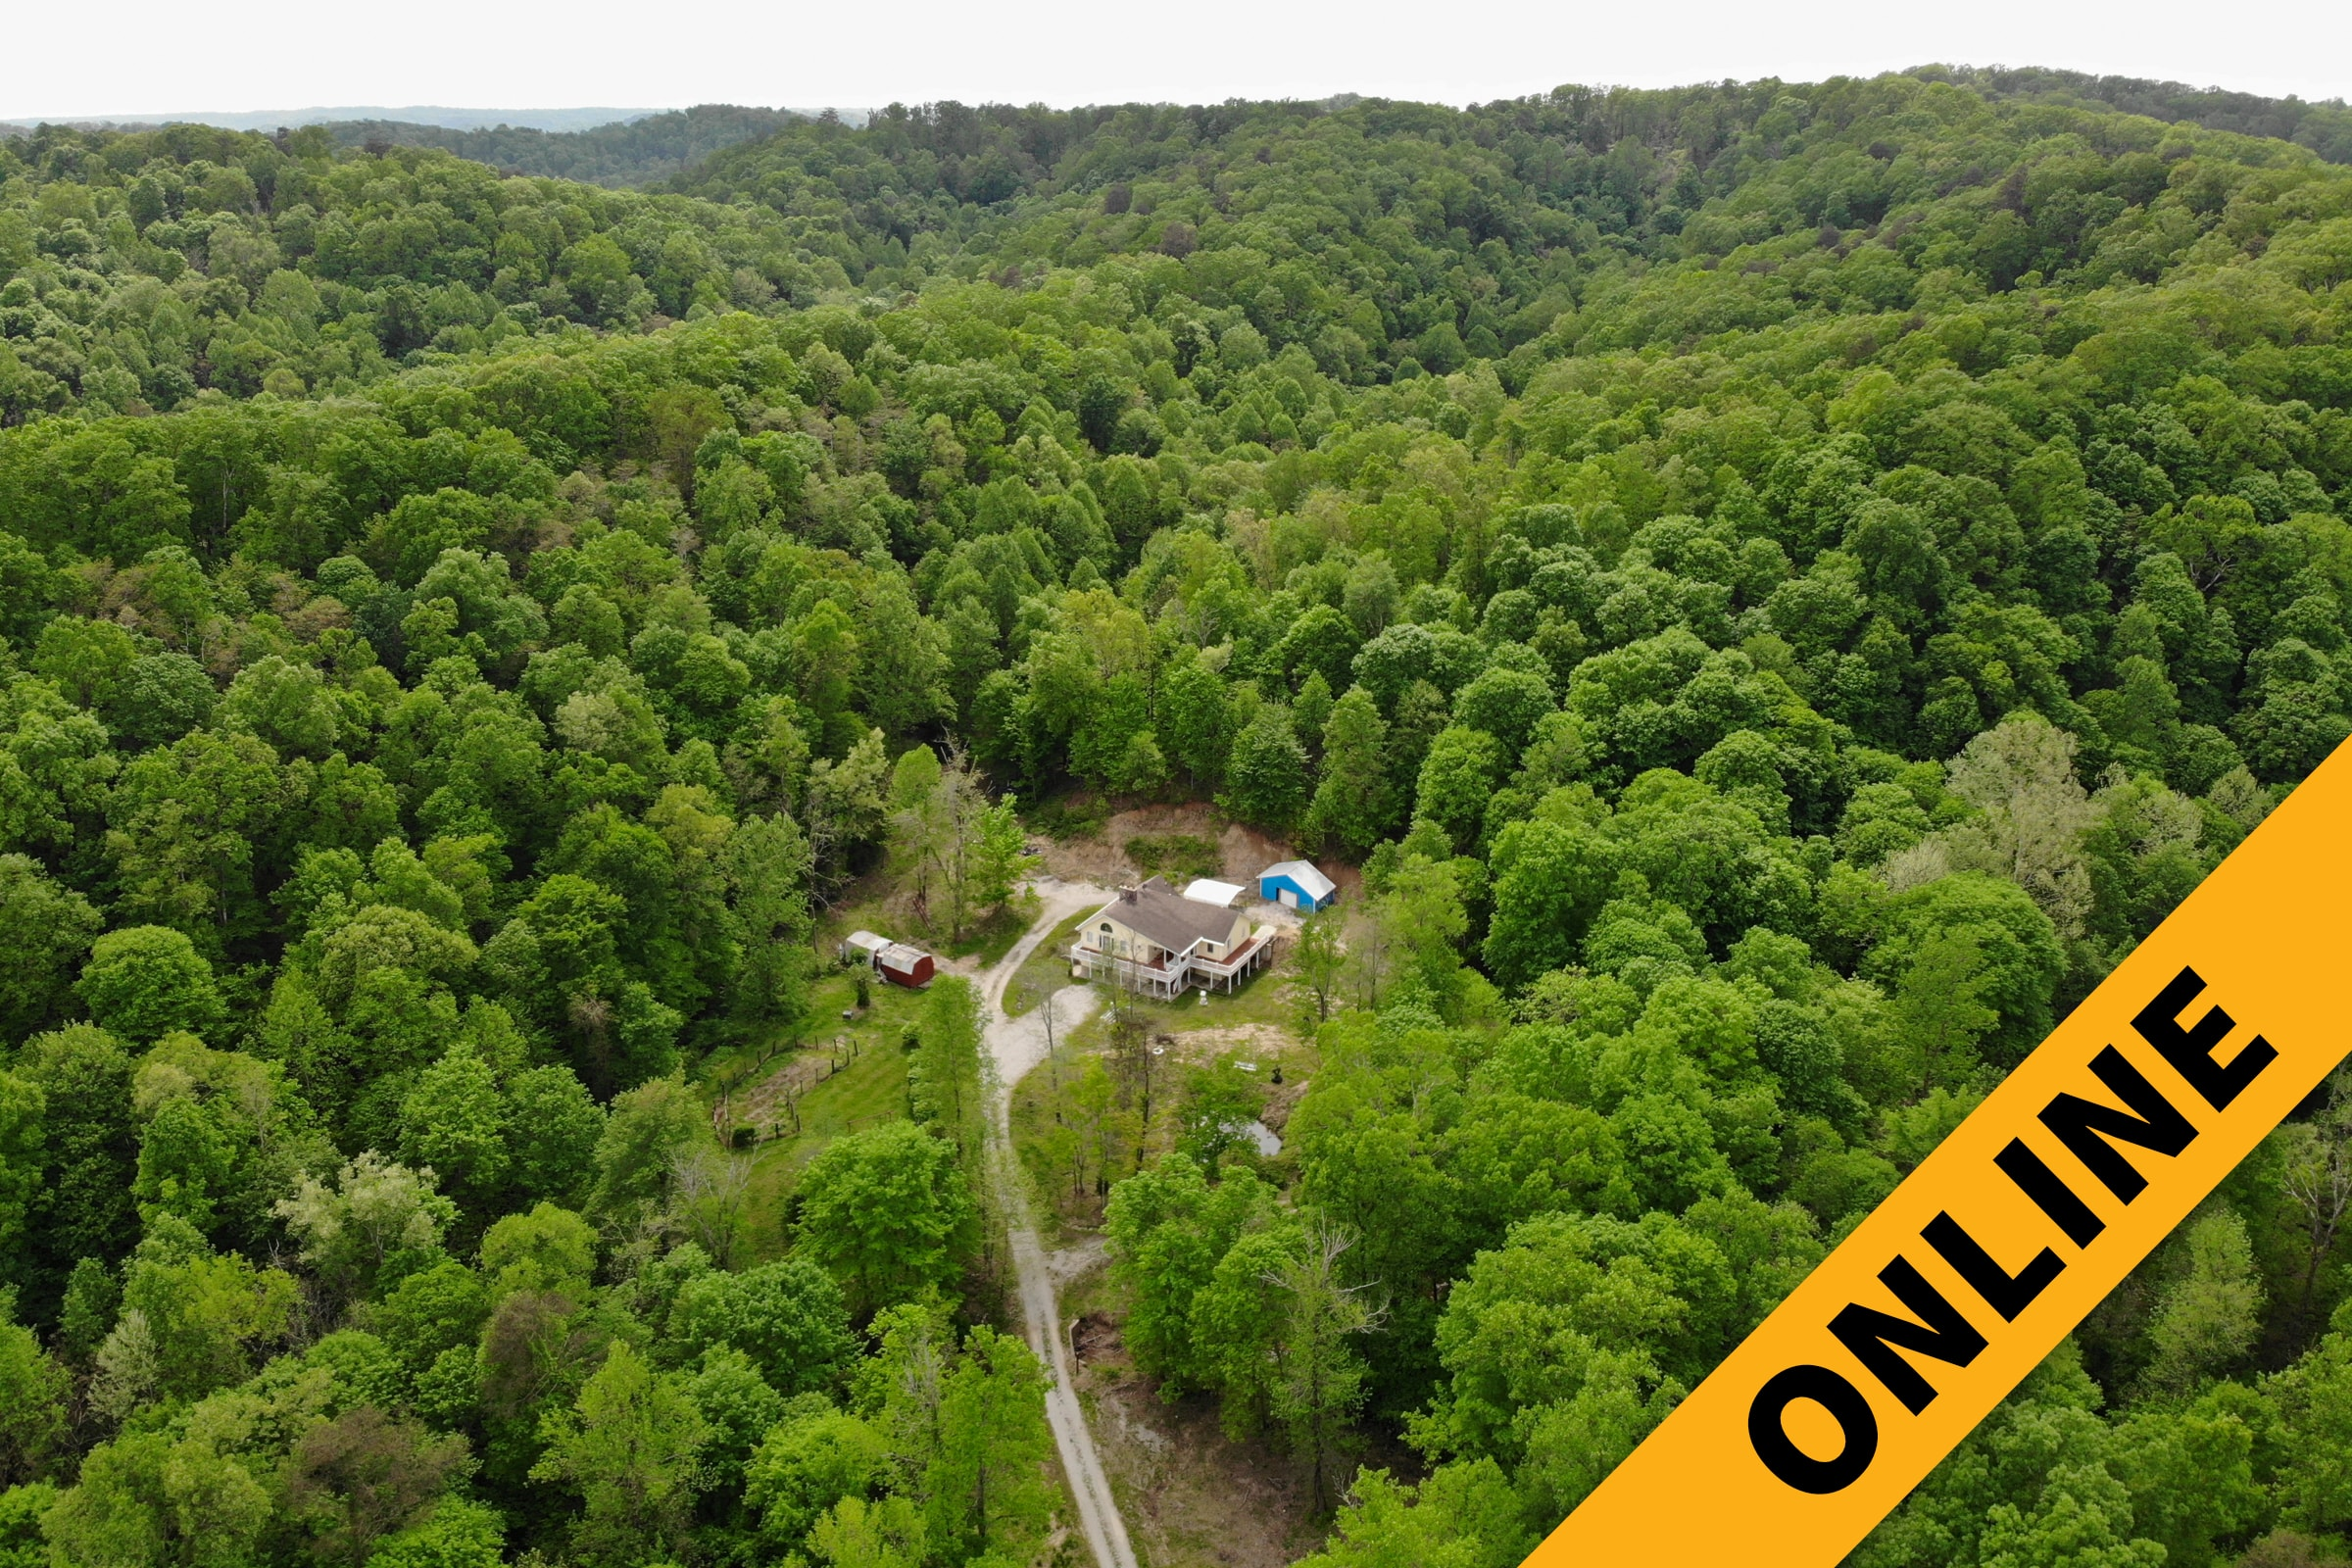 88 Acres & Home Online Auction